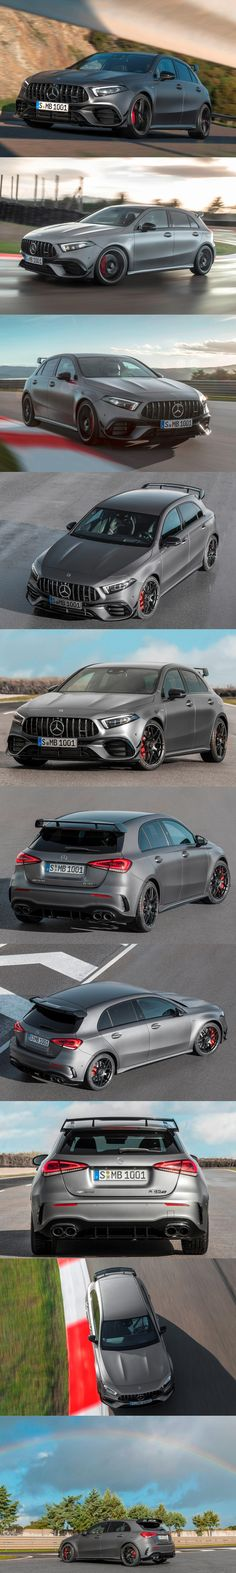 If you want to lust over the latest piece of American unobtanium during this of July, then here's somet. Benz Car, Mercedes Benz Amg, A45 Amg, Best Filters For Instagram, Top Luxury Cars, Air Ride, Cars And Motorcycles, Dream Cars, Cars